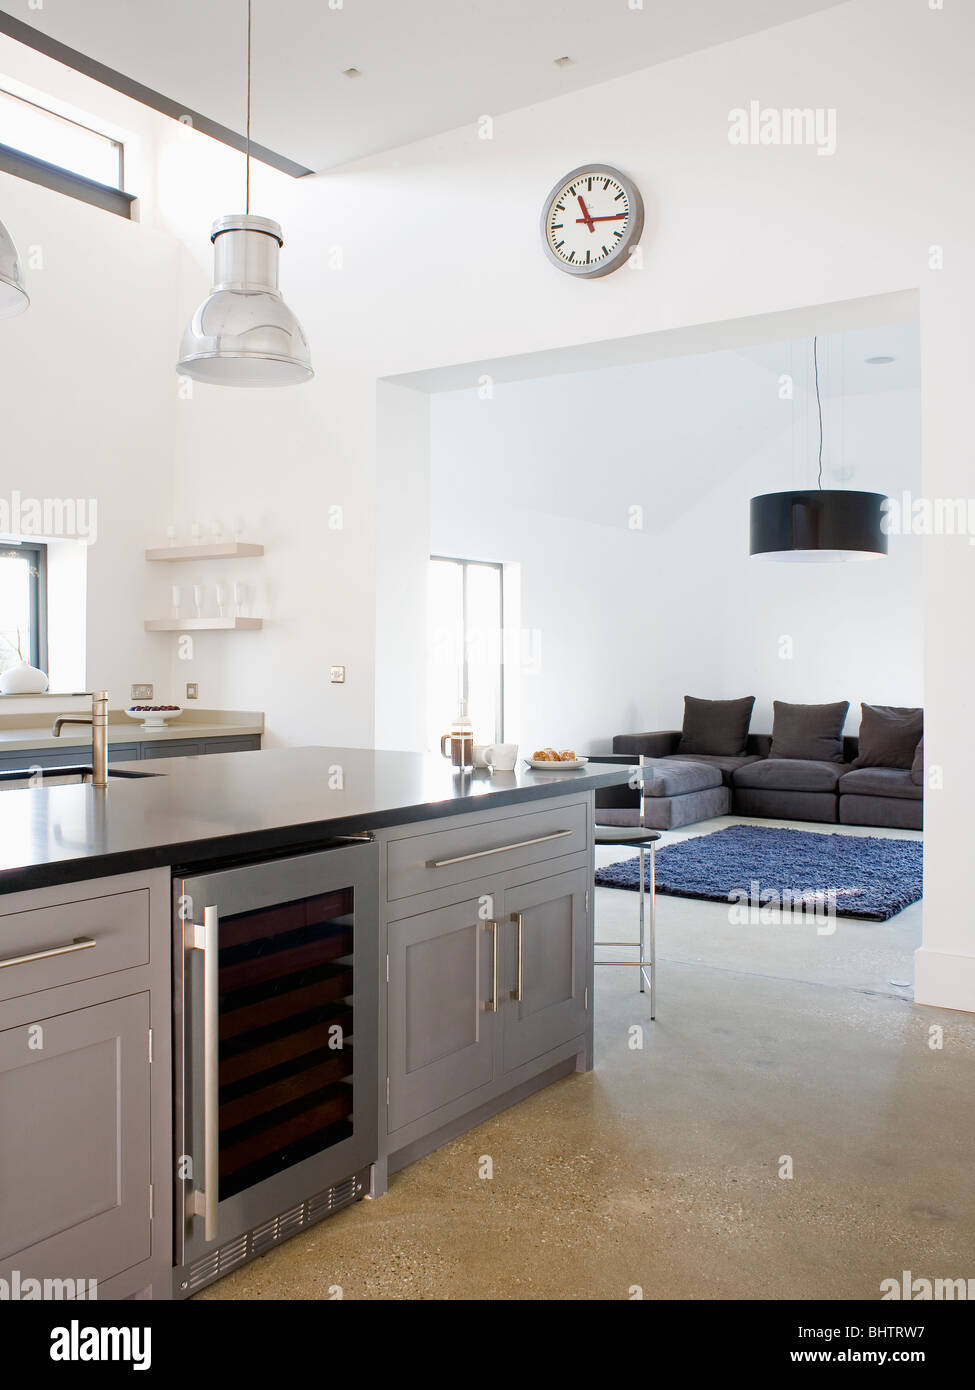 Wine Cooler In Gray Fitted Island Unit In Open Plan Modern White Stock Photo 28205107 Alamy